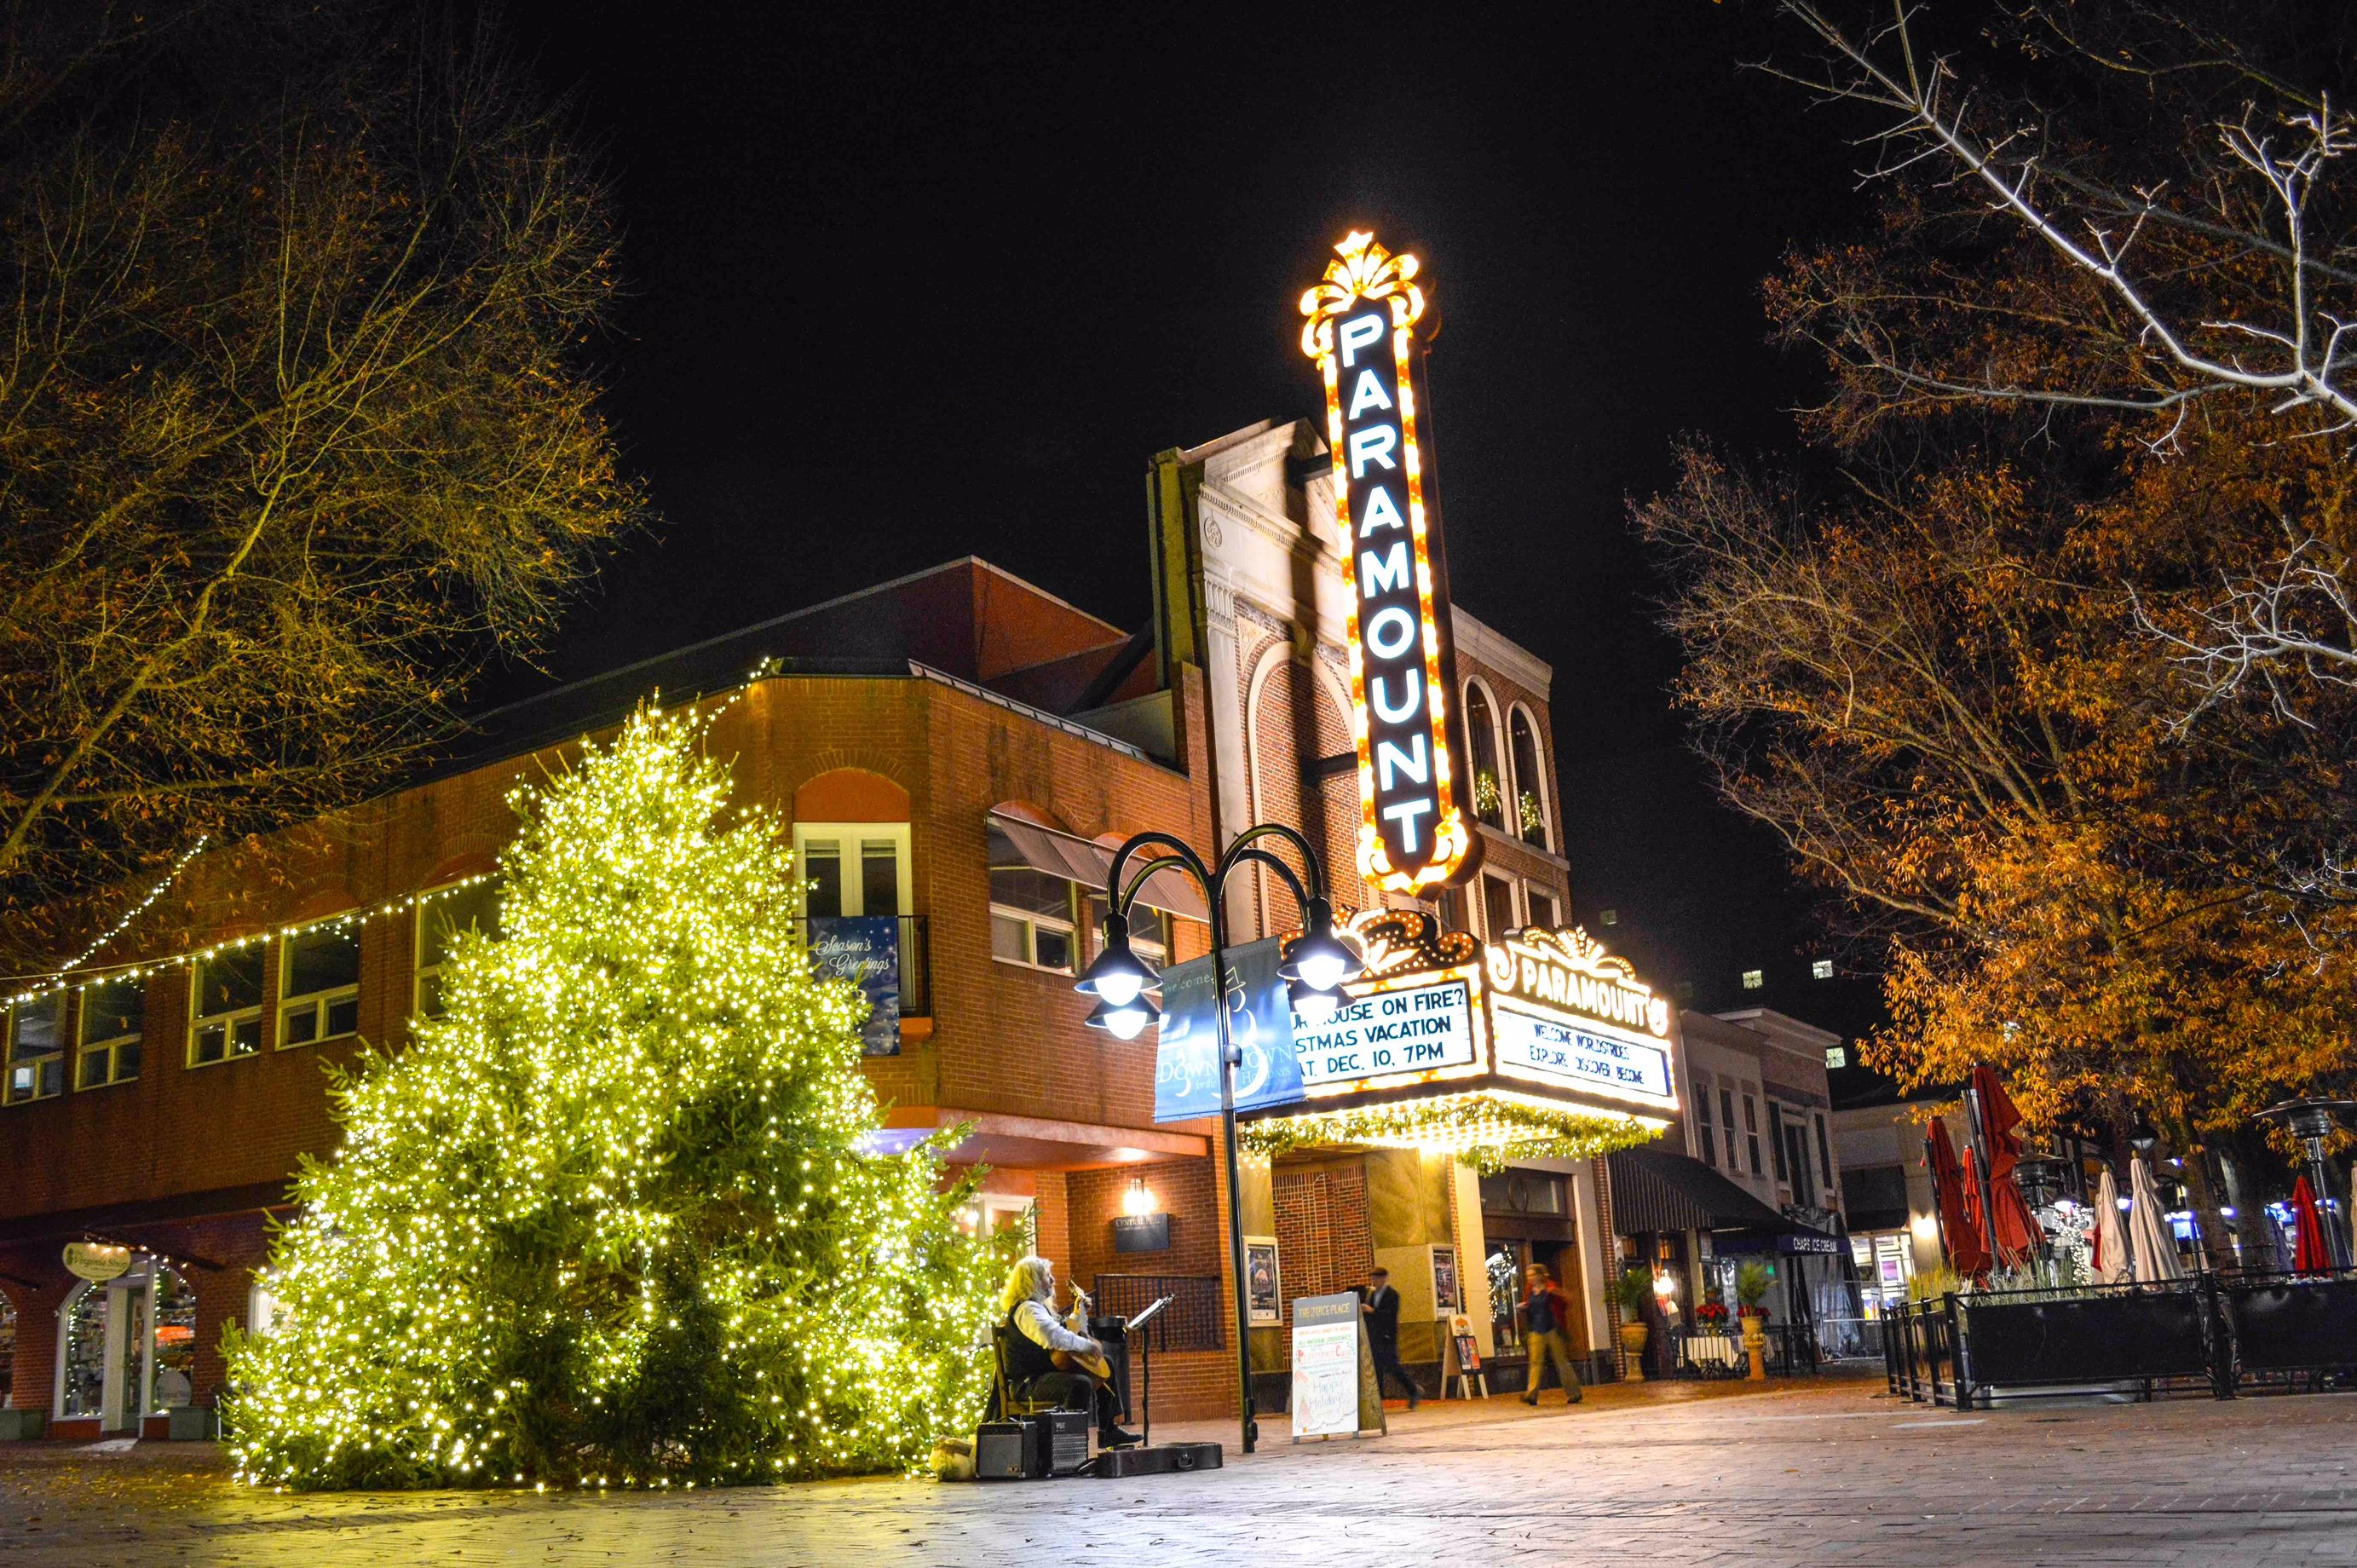 Christmas Free Meal 2020 Charlottesville 10 Holiday Events You Don't Want to Miss in Charlottesville